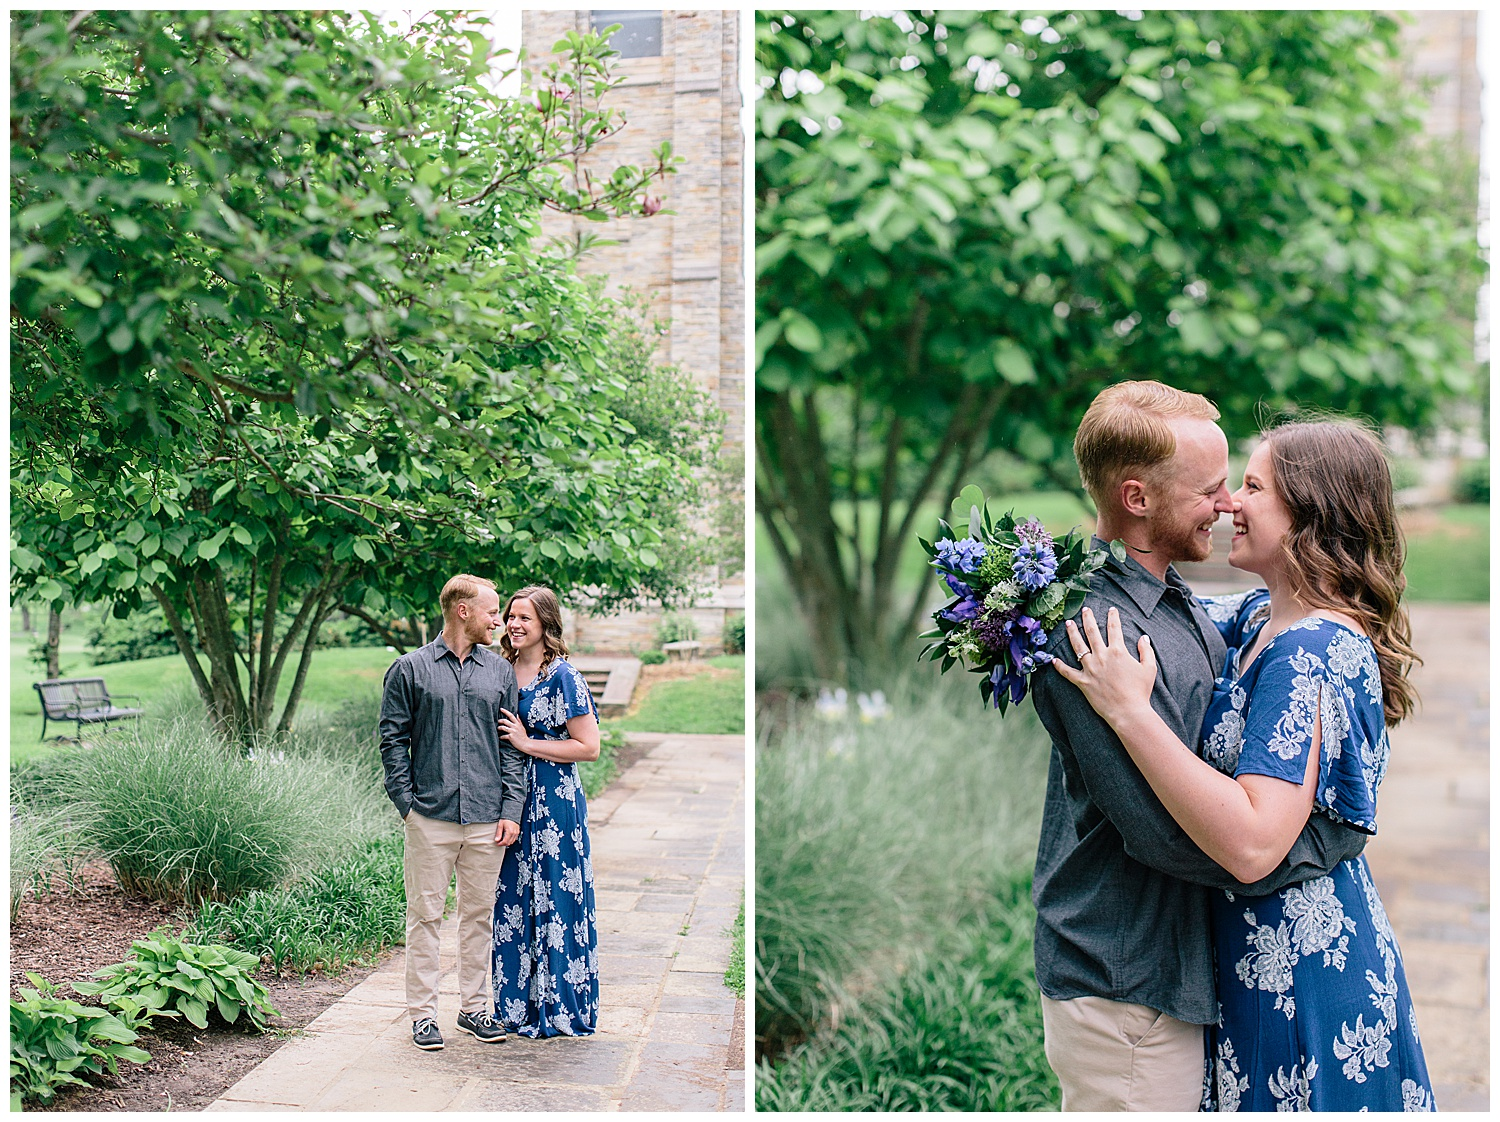 emily-belson-photography-frederick-md-engagement-12.jpg